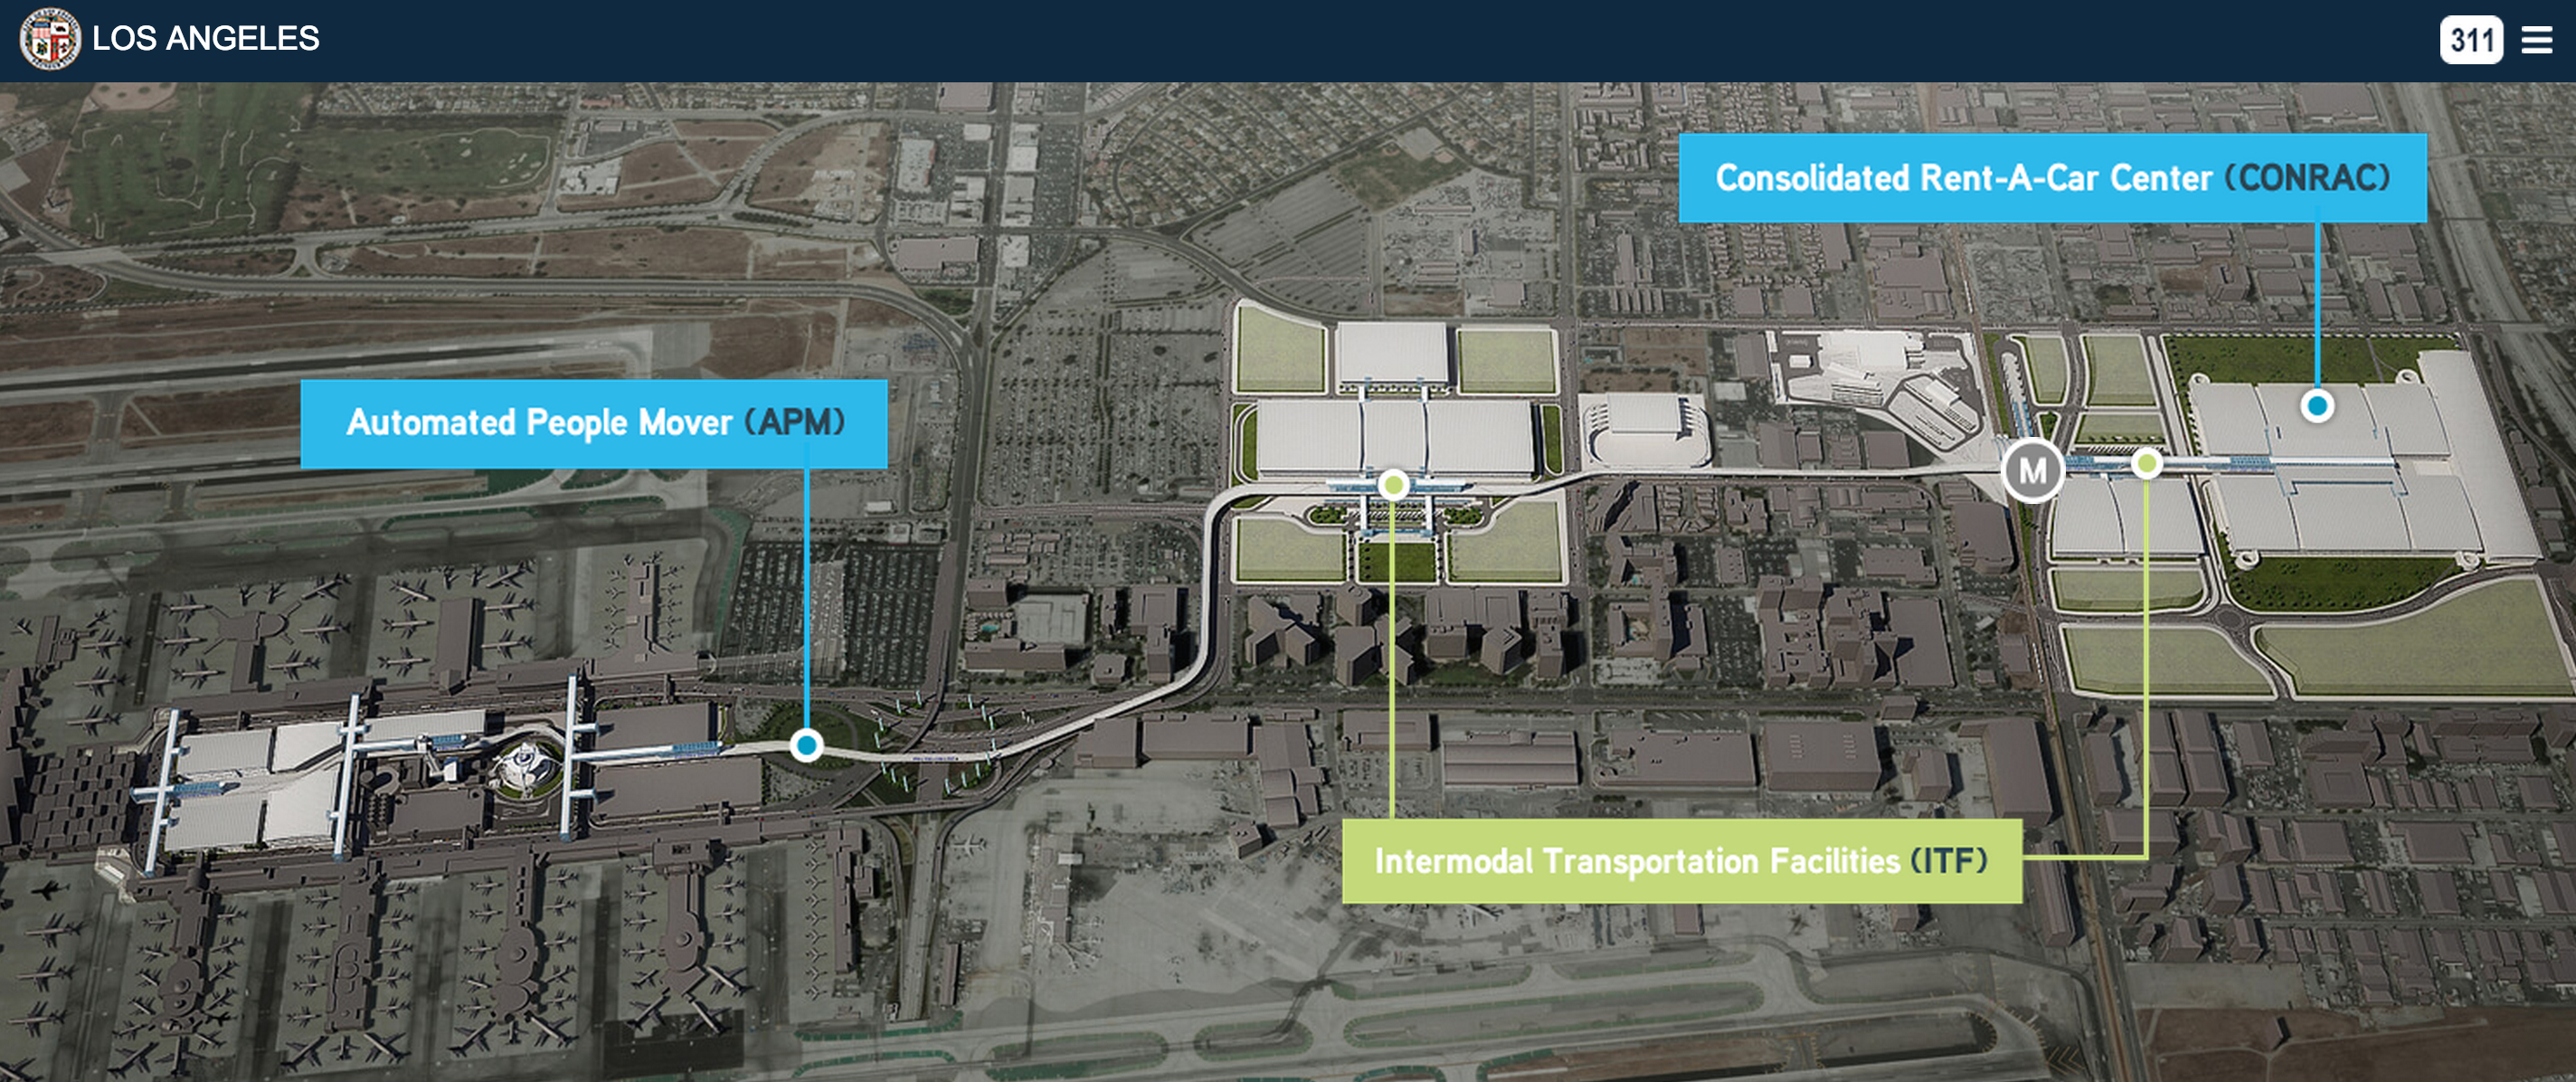 The people mover's route. The 'M' shows the station that will connect with the Crenshaw/LAX Line. Source: Los Angeles World's Airport.